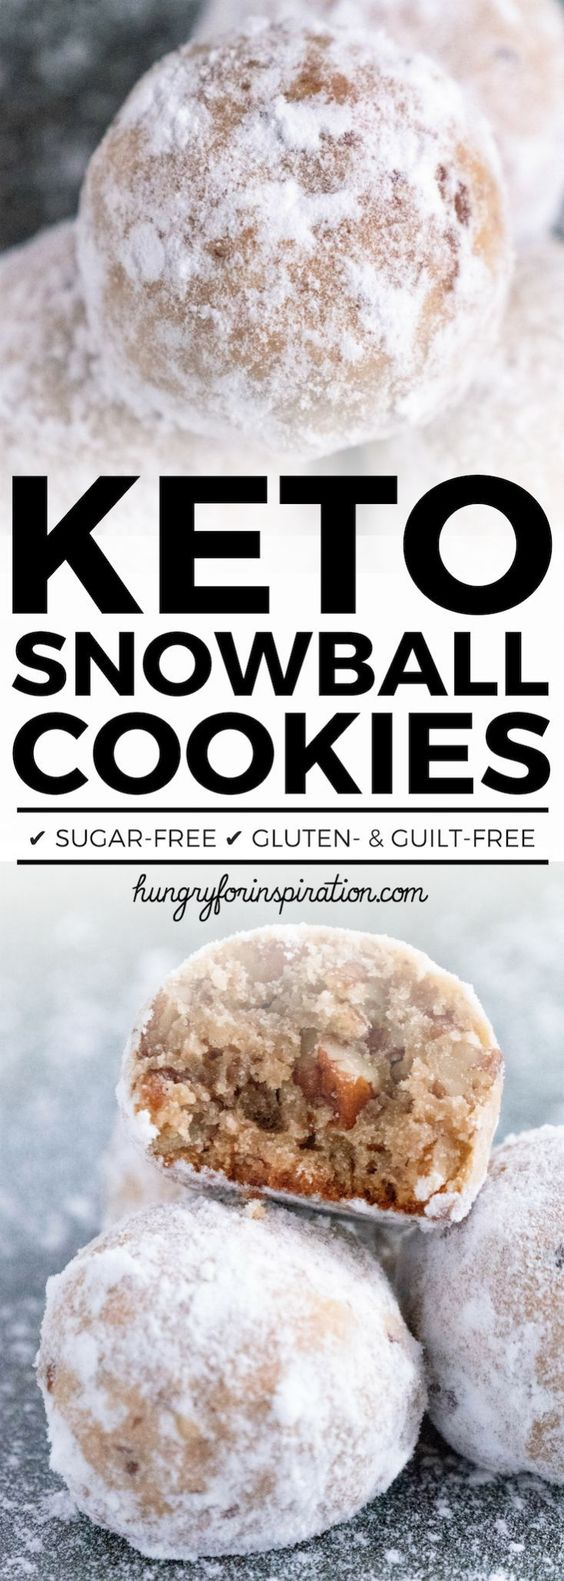 These Heavenly Keto Pecan Snowball Cookies are perfect Keto Christmas Cookies! They're incredibly good and will be the perfect addition to your holidays! And one cookie only has 1g net carbs! #keto #ketodiet #ketorecipes #ketogenic #ketogenicdiet #ketodessert #lowcarb #lowcarbdiet #lowcarbrecipes #lowcarbdessert #christmascookies